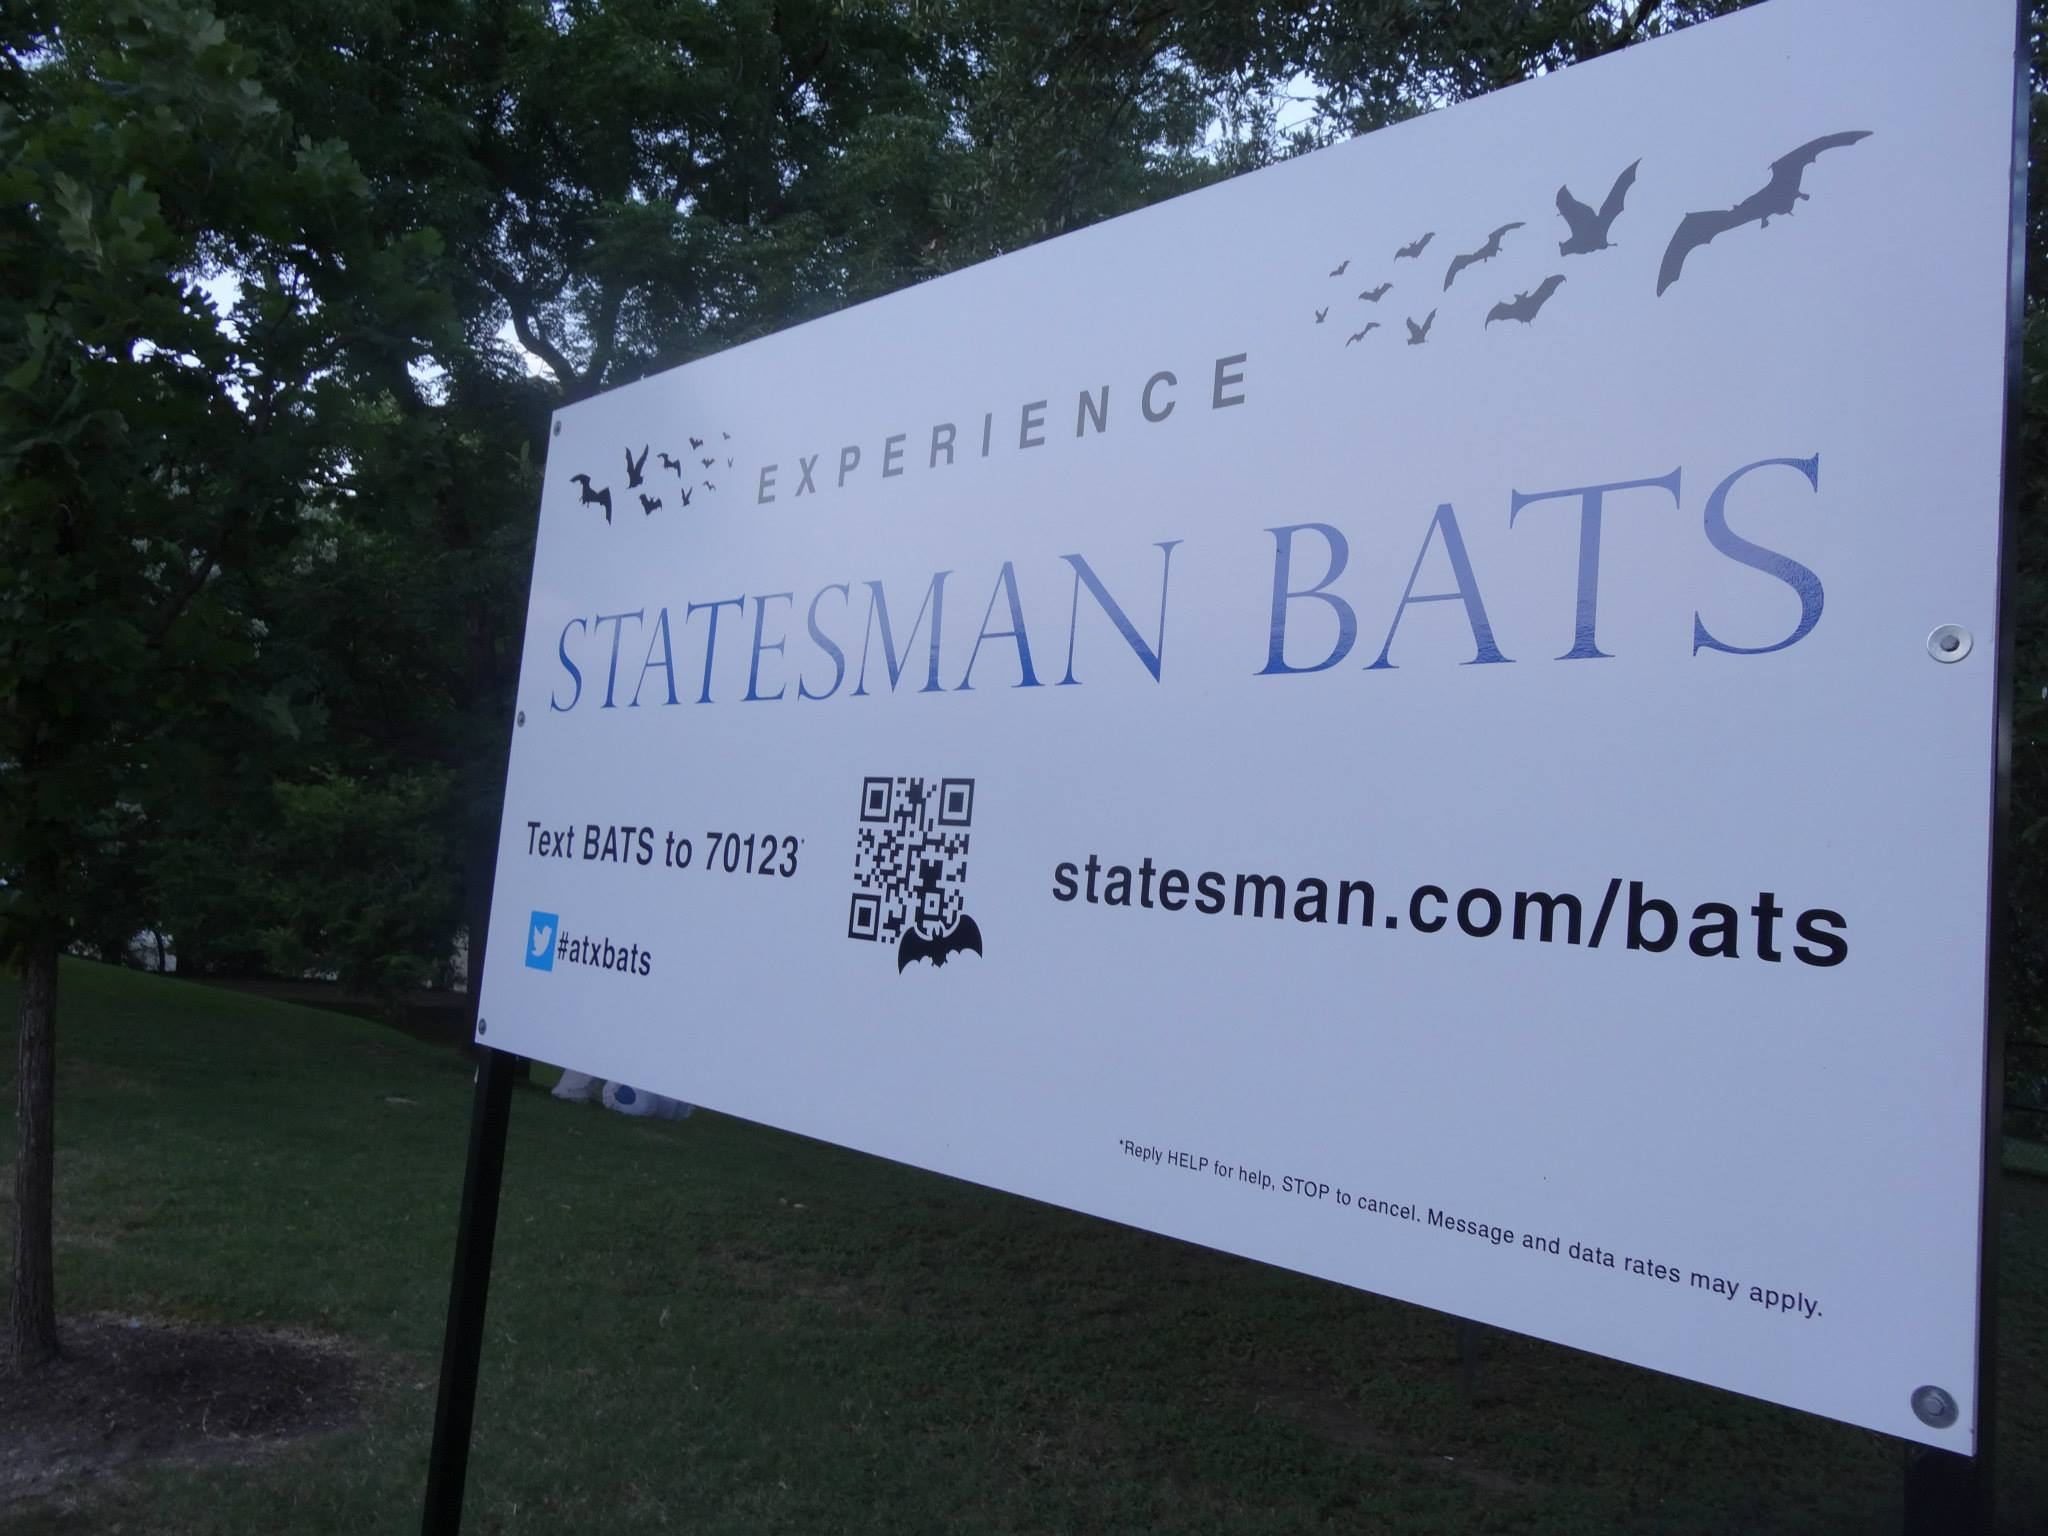 Statesman bat experience sign